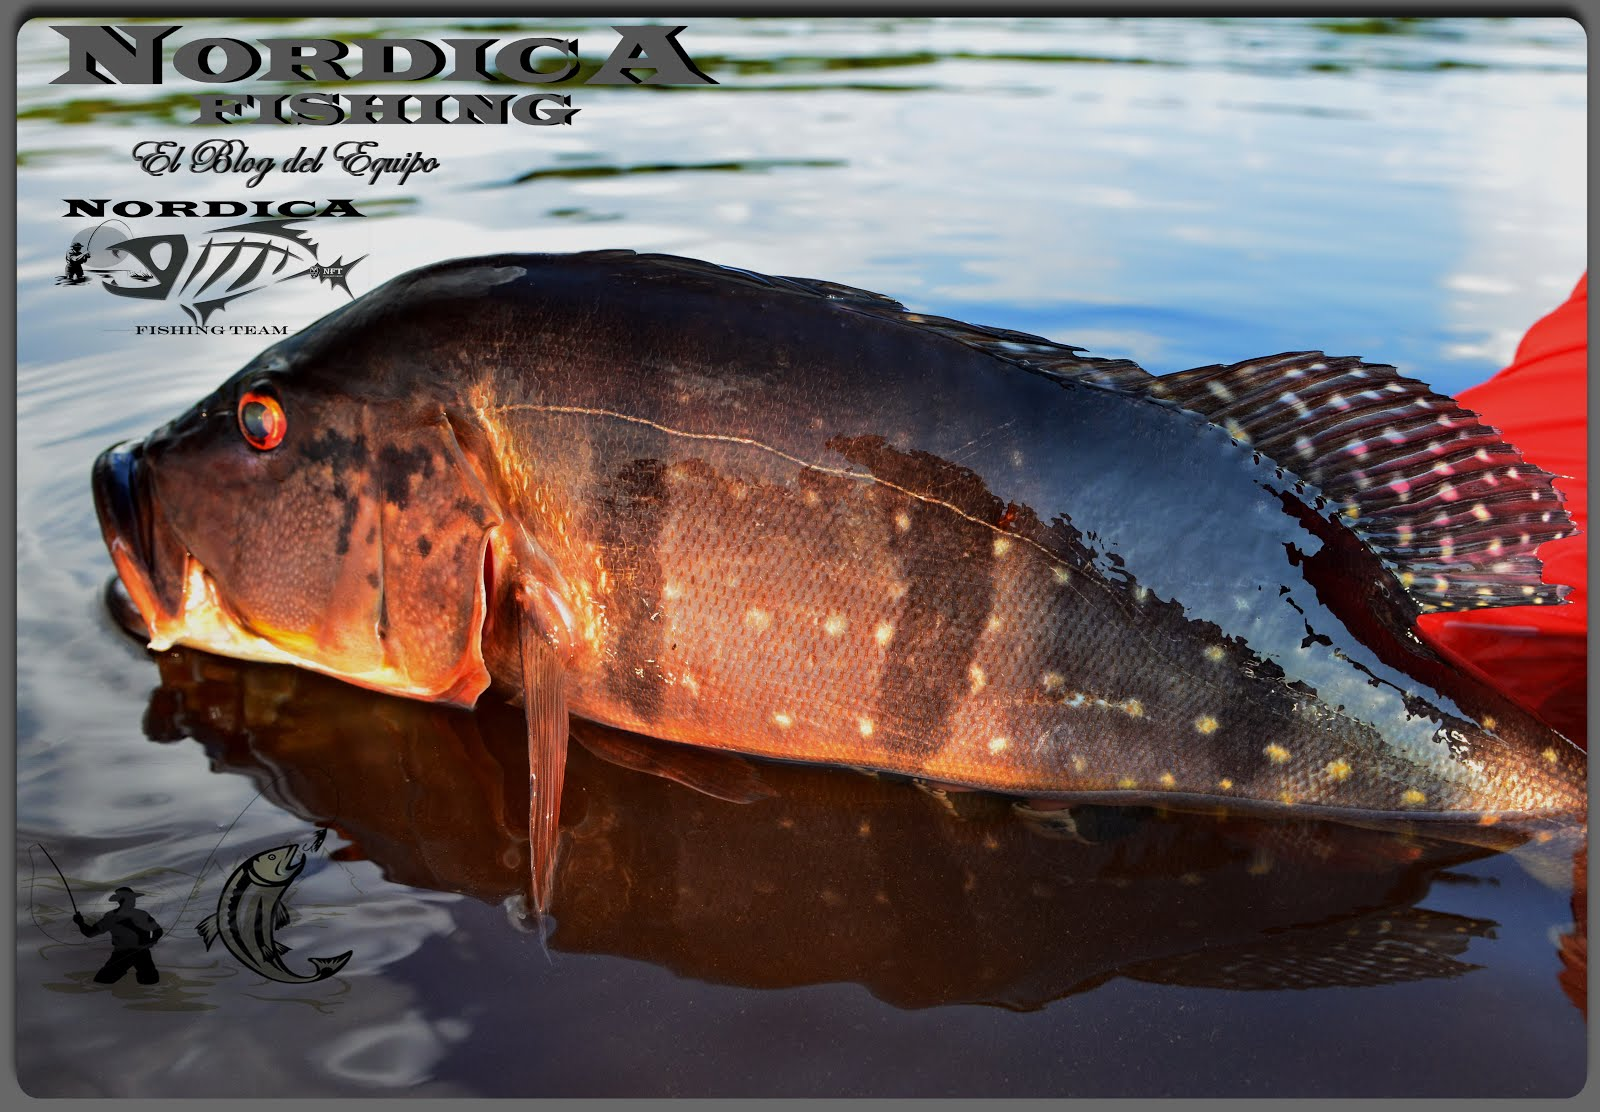 NORDICA FISHING